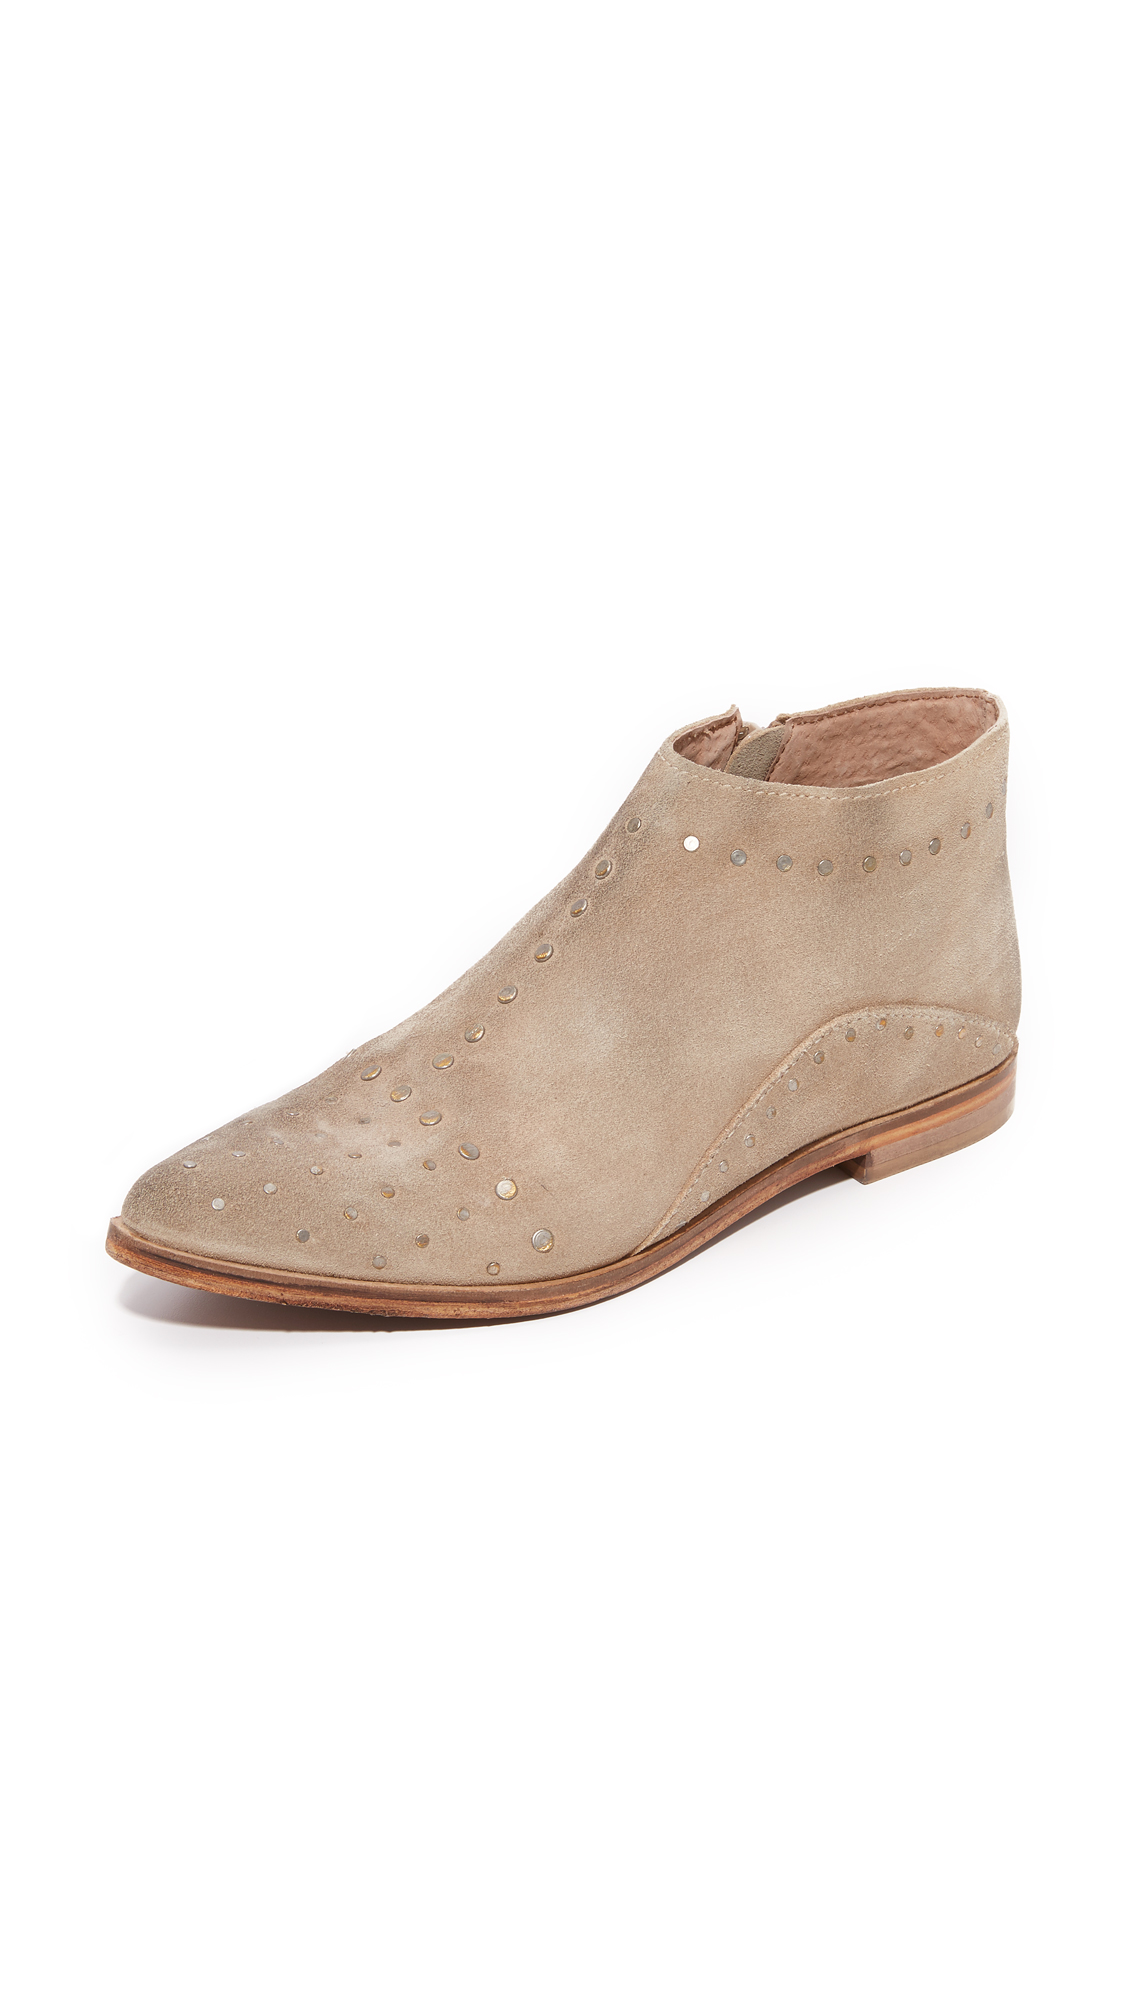 Free People Aquarian Studded Ankle Booties - Taupe